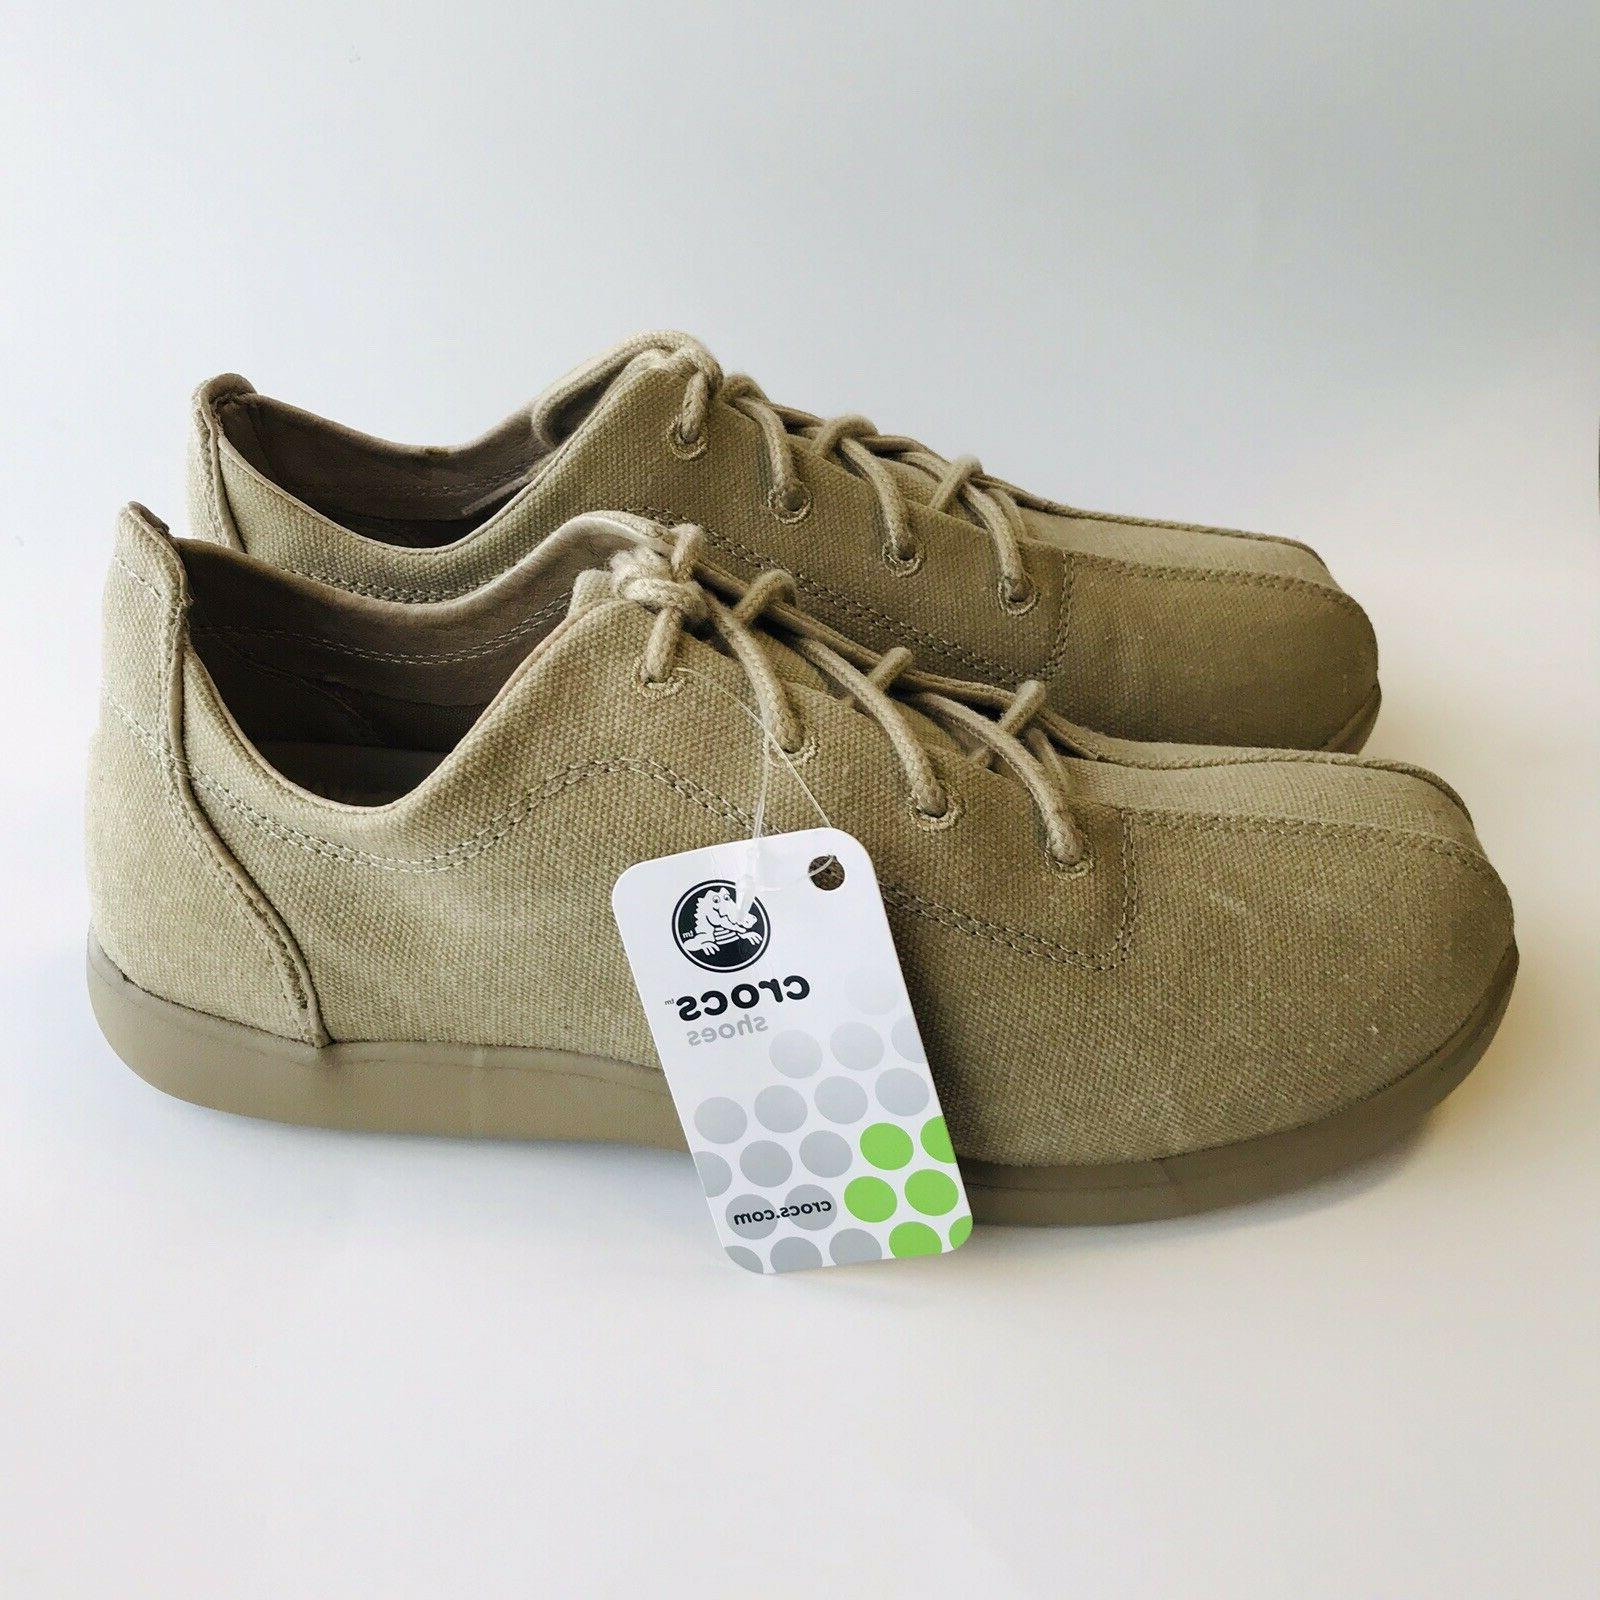 CROCS Mens Venture up Size 8 NWT